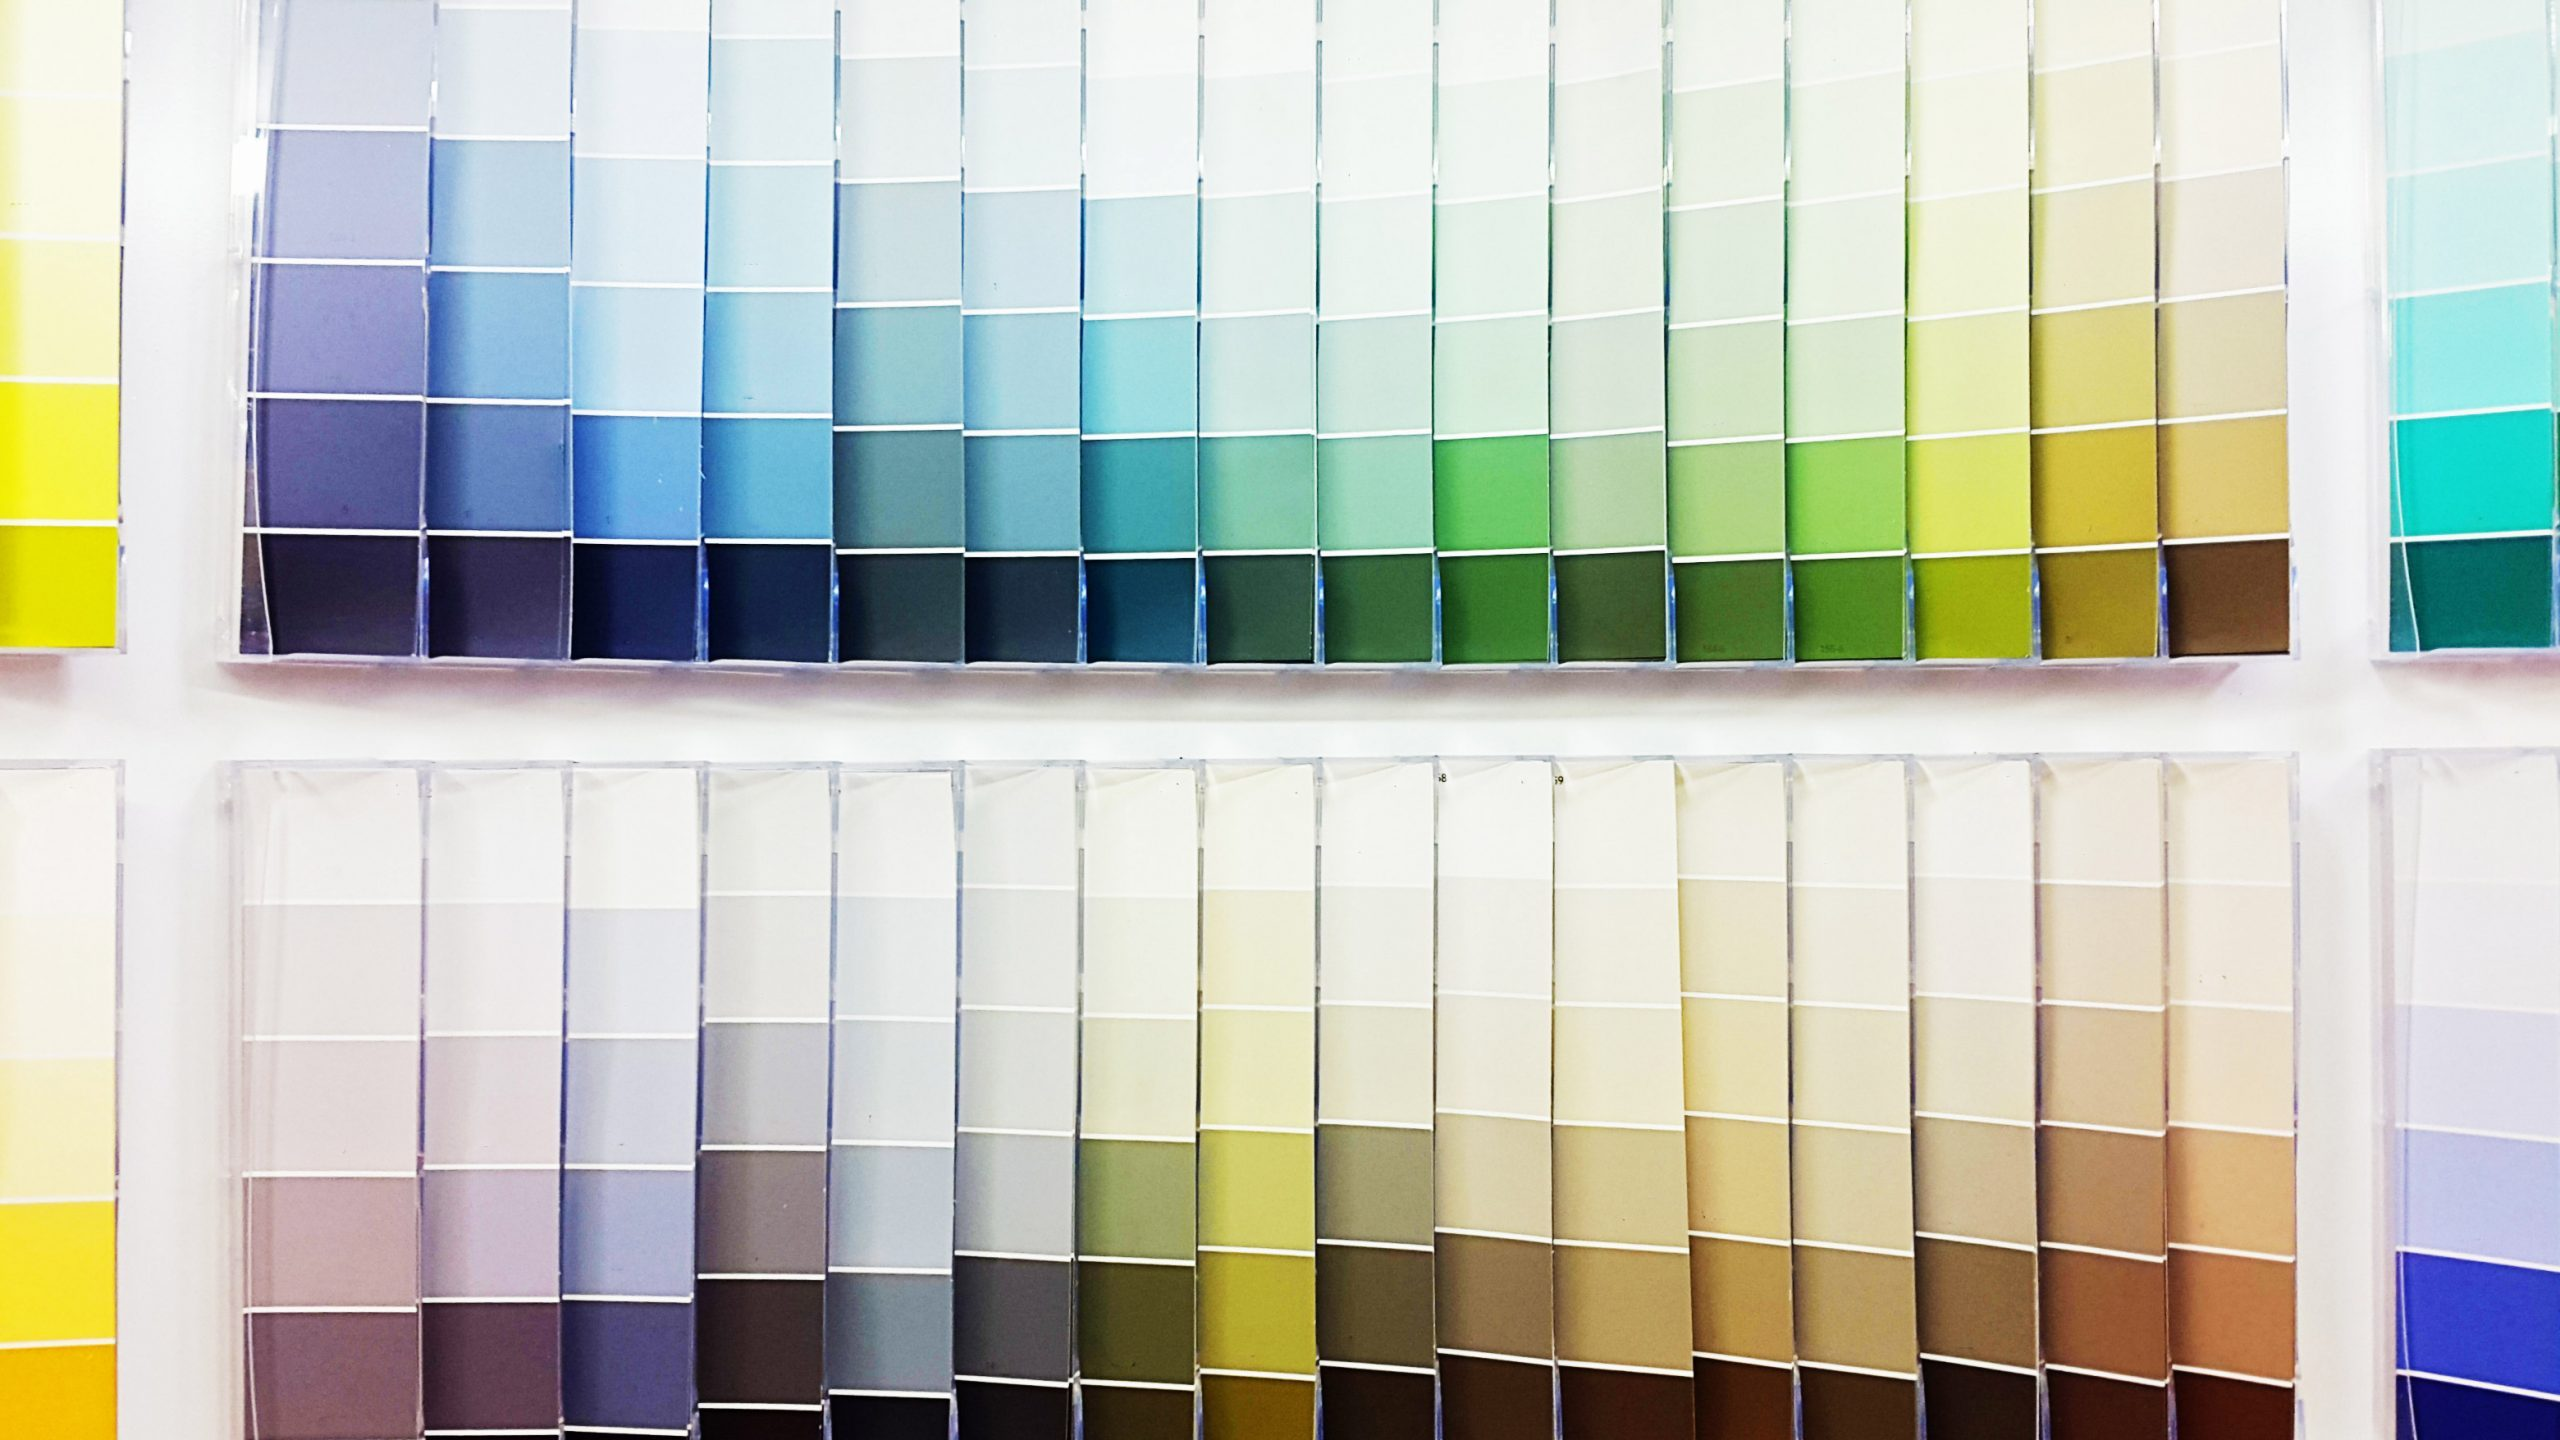 paint chips at a hardware store paint department